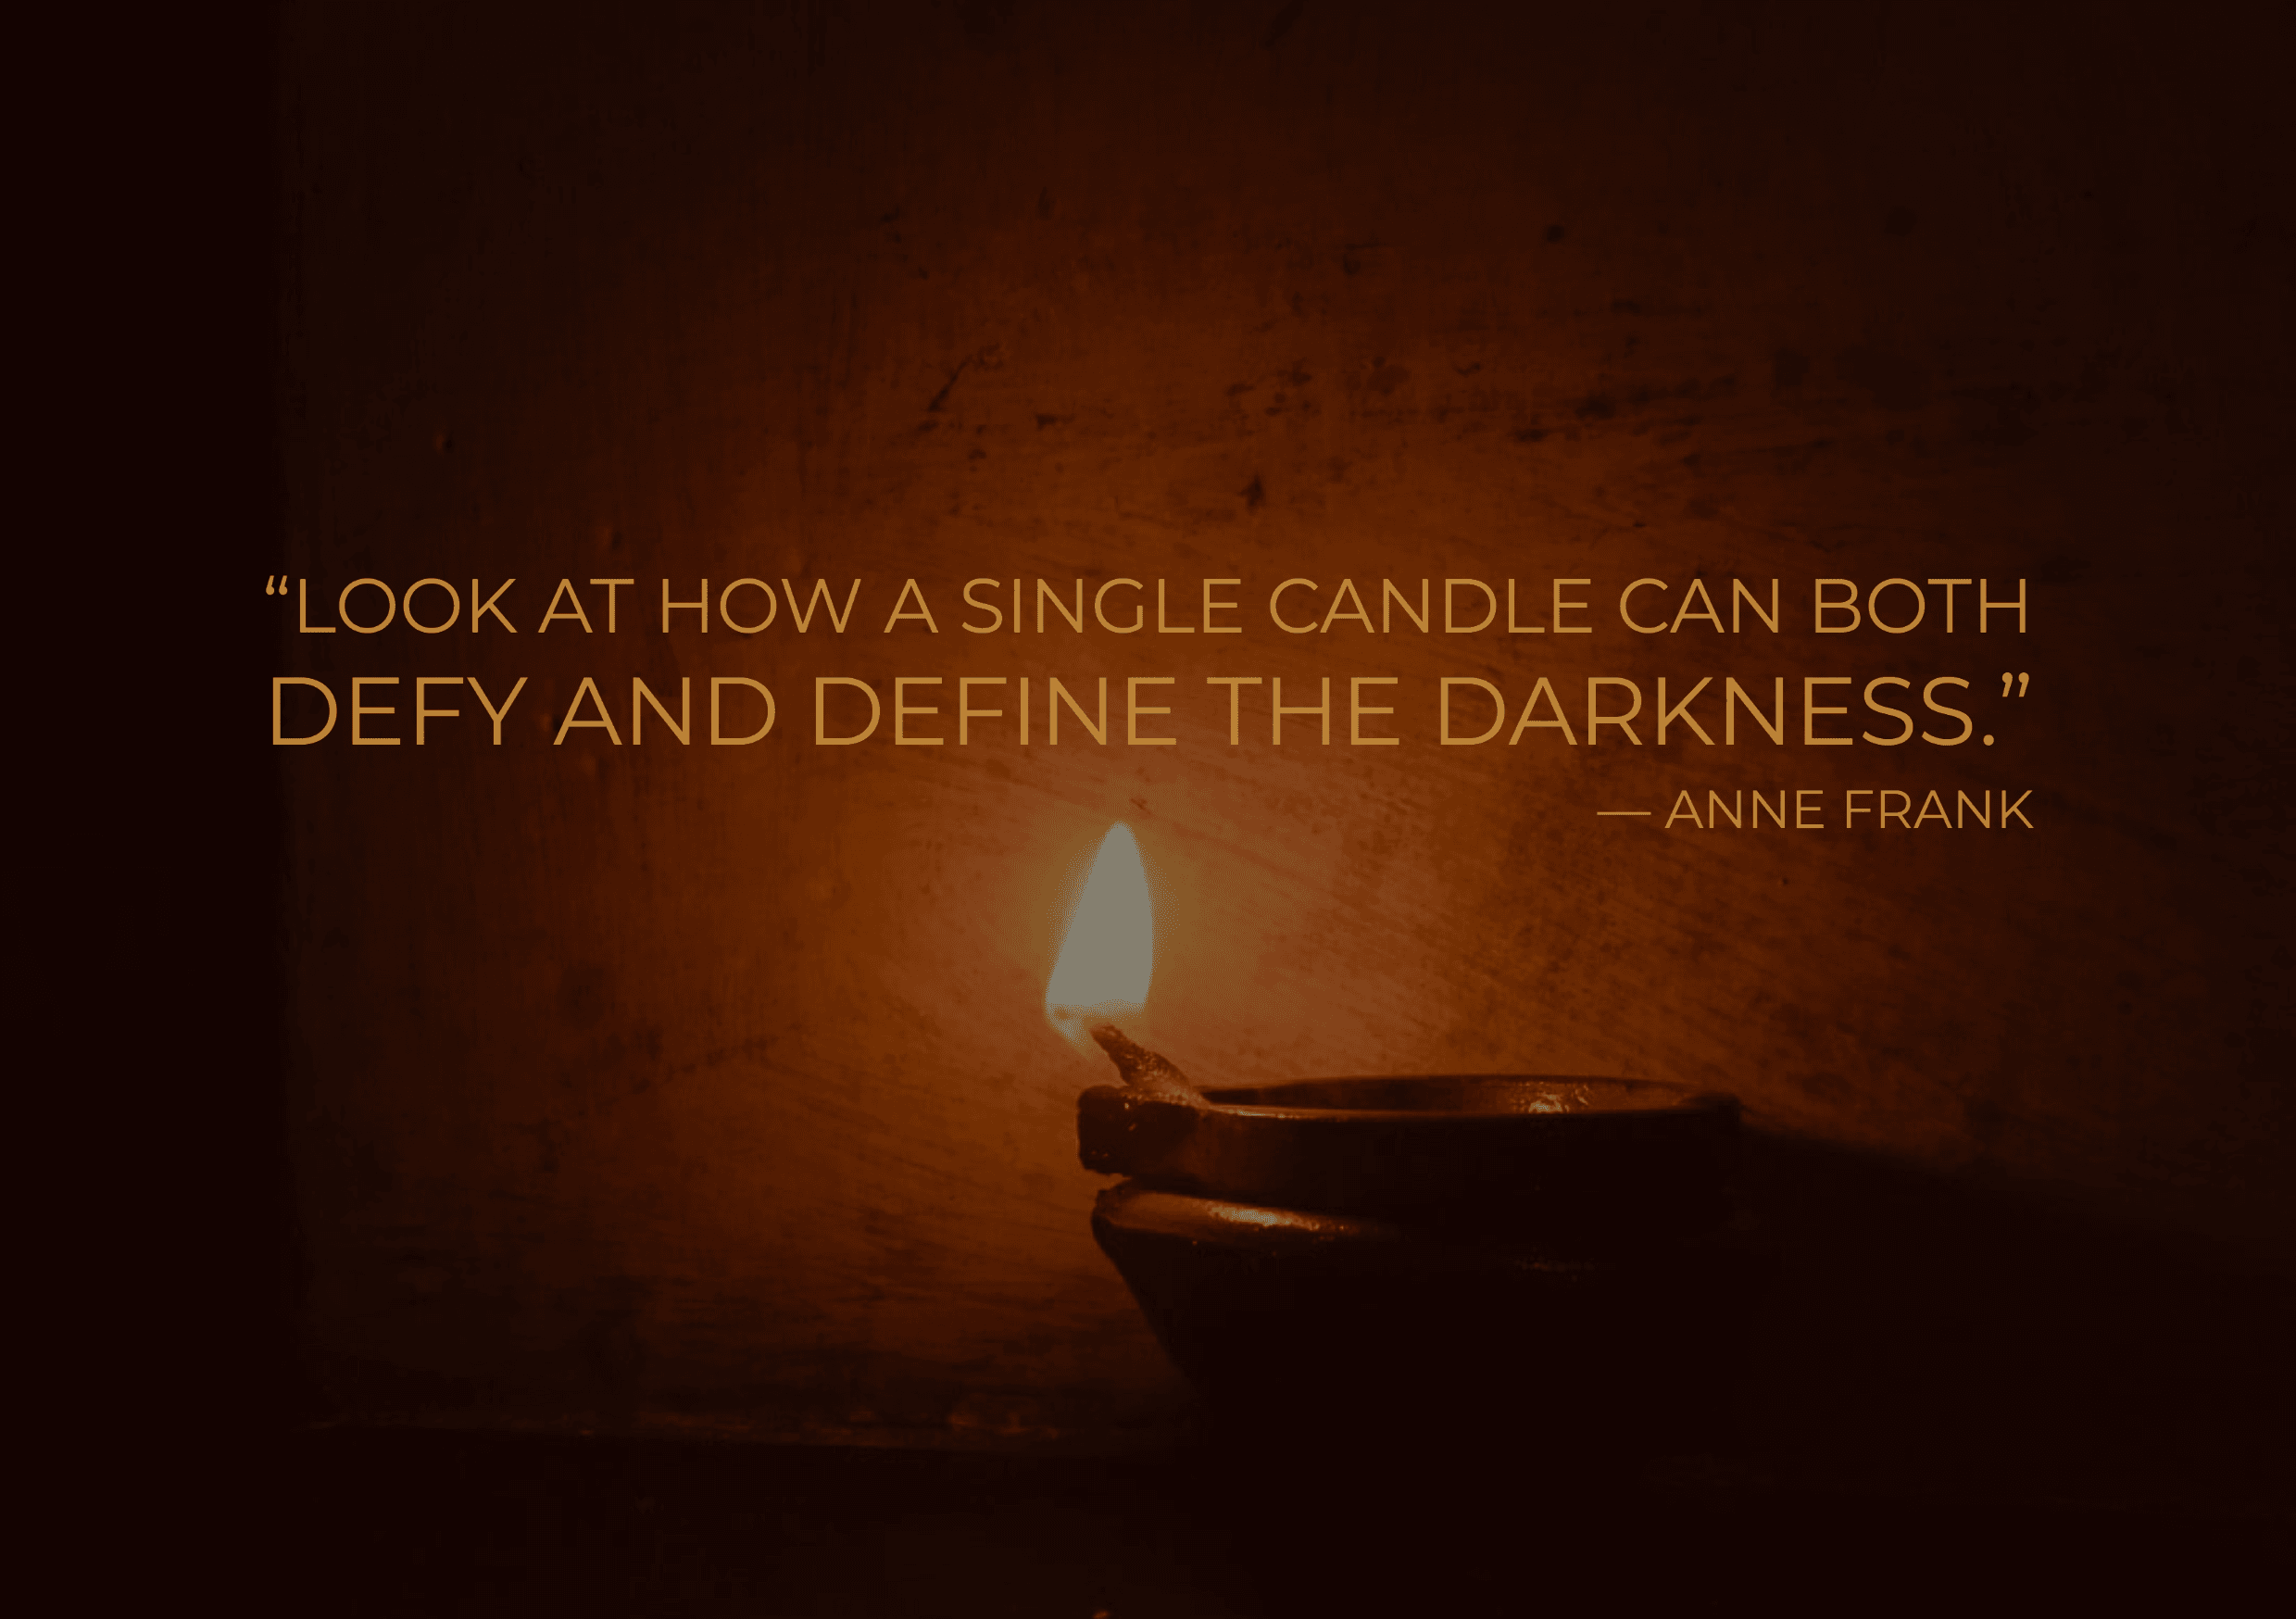 Anne Frank One Candle Defies and Defines the Darkness